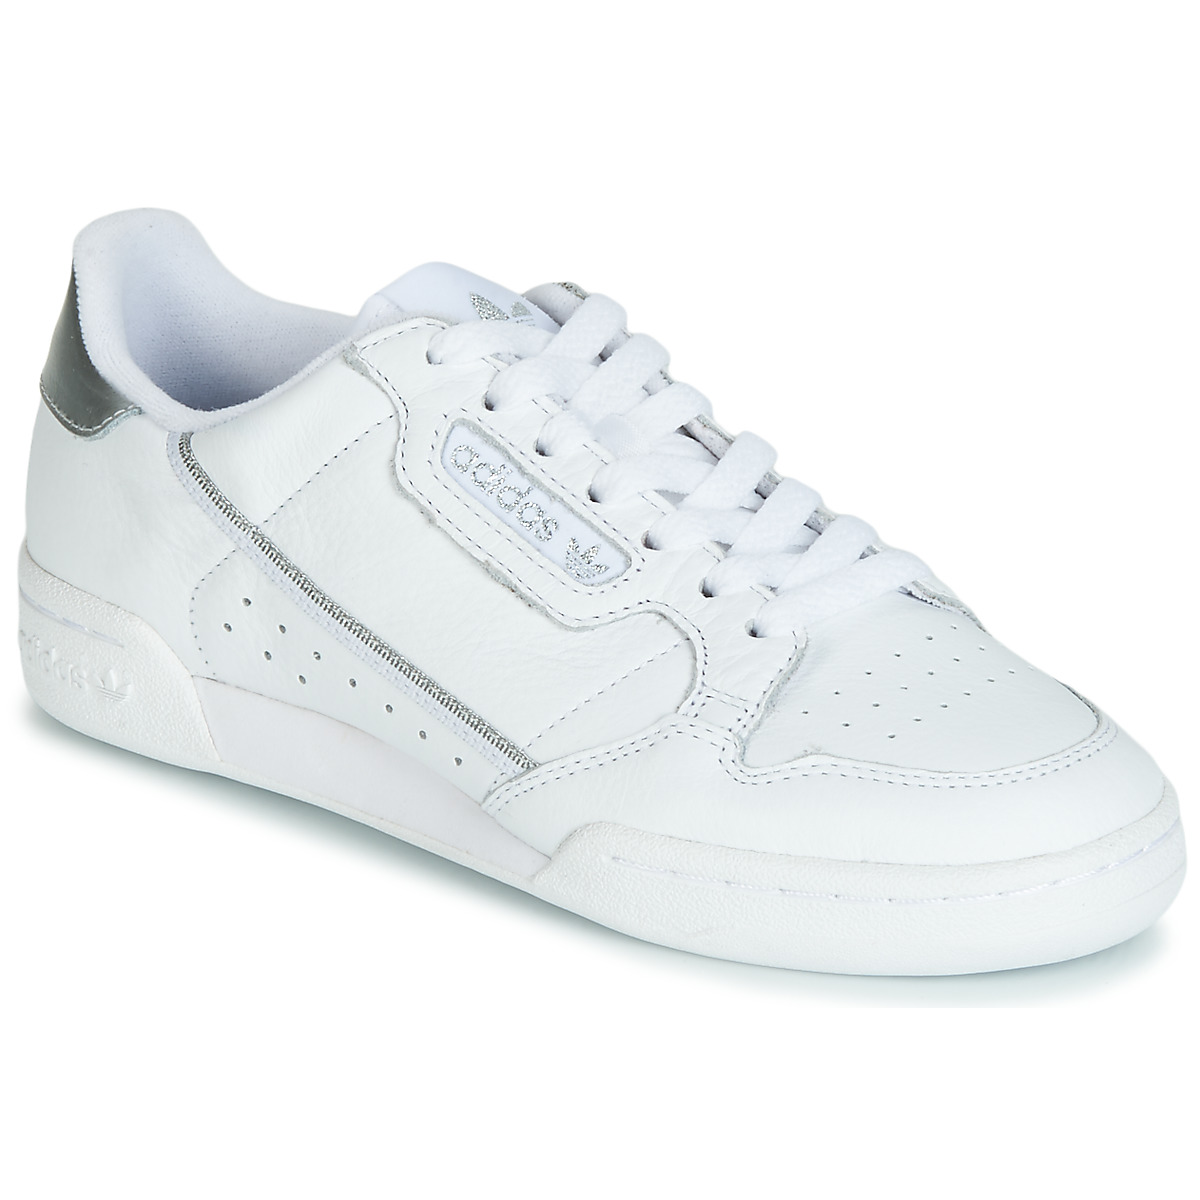 Sneakers adidas  CONTINENTAL 80s